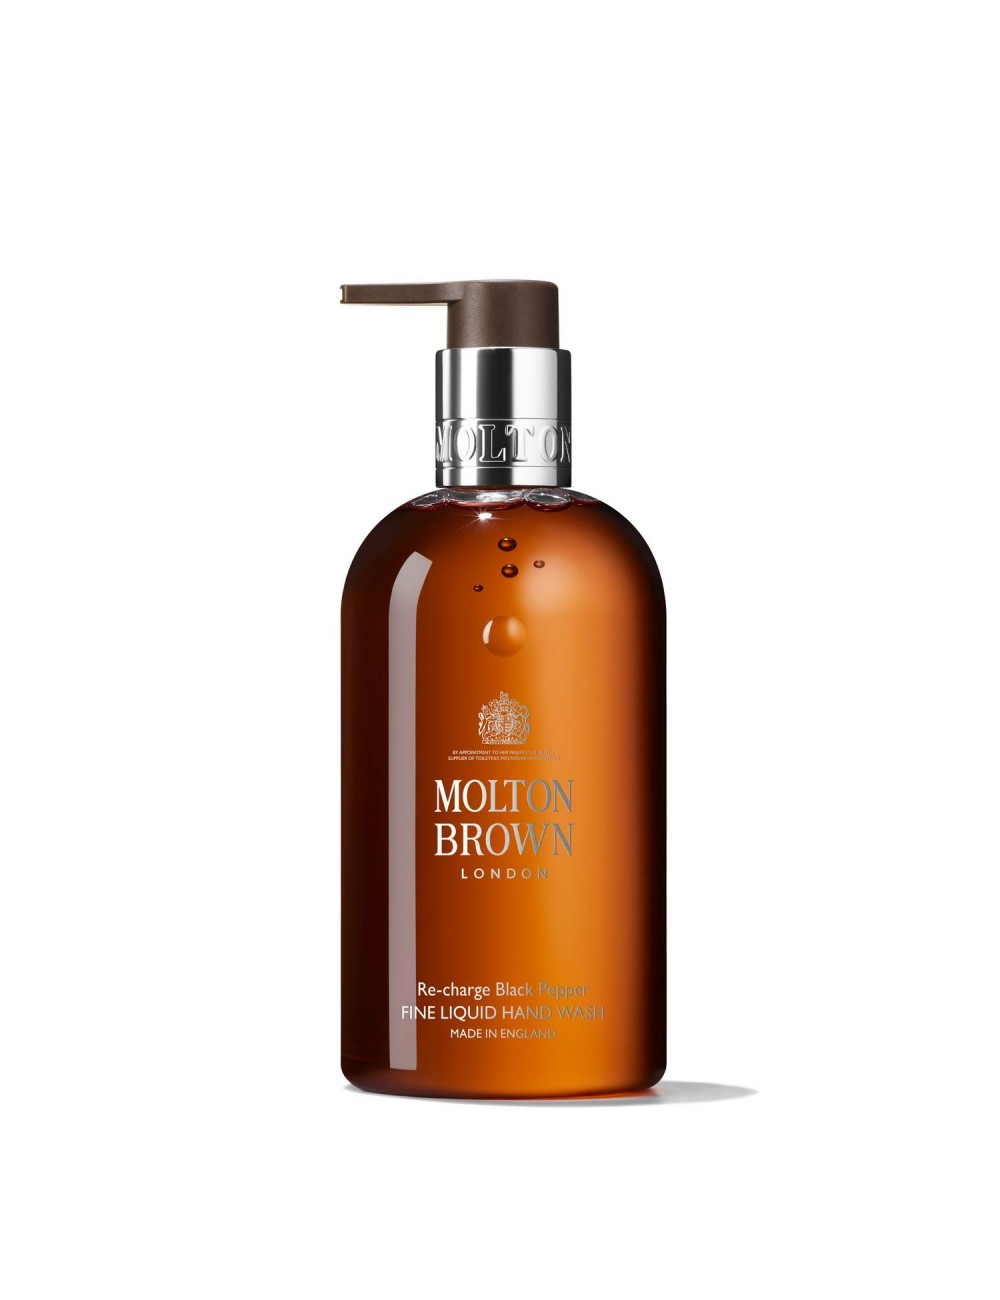 Molton Brown Black Pepper Hand wash